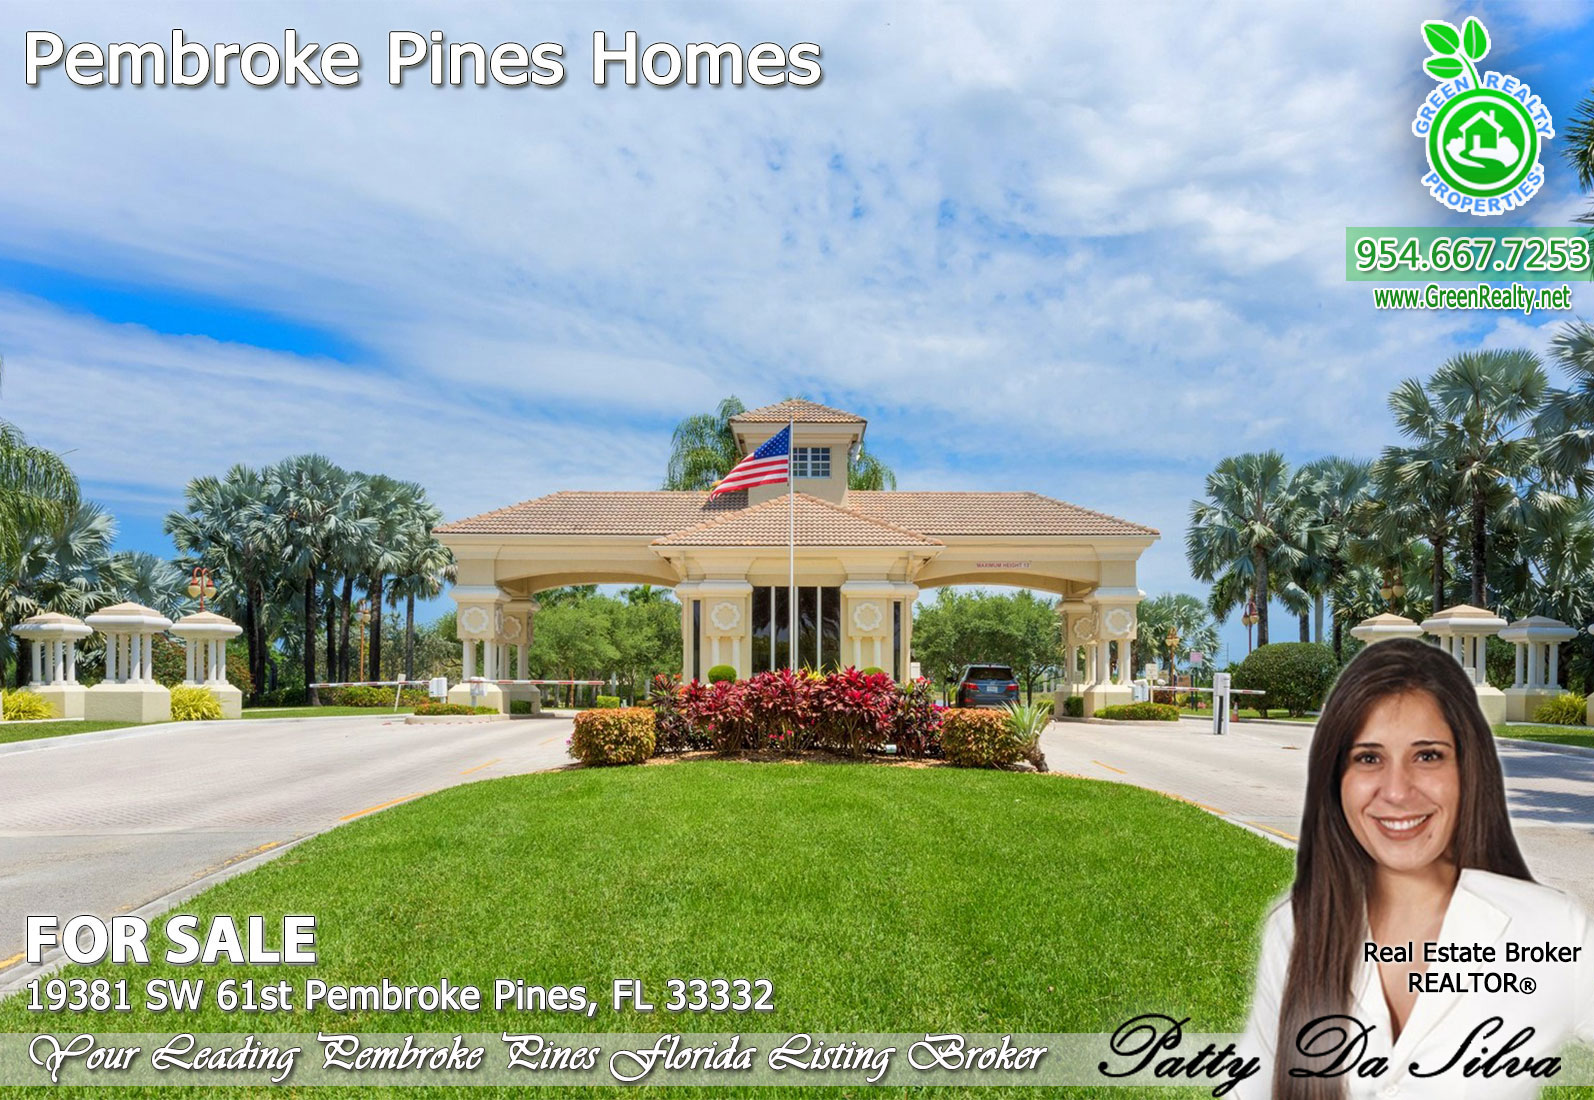 Green-Realty-properties-listing-in-pembroke-pines-florida